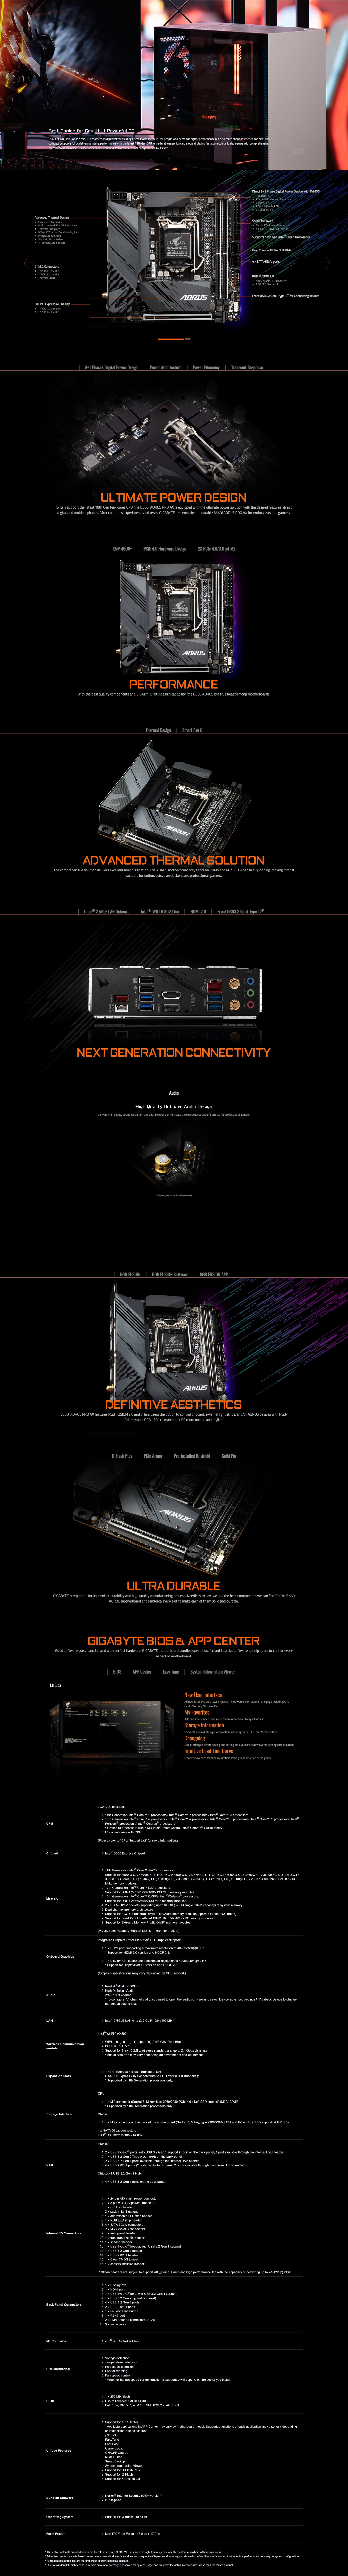 A large marketing image providing additional information about the product Gigabyte B560I Aorus Pro AX LGA1200 mITX Desktop Motherboard - Additional alt info not provided